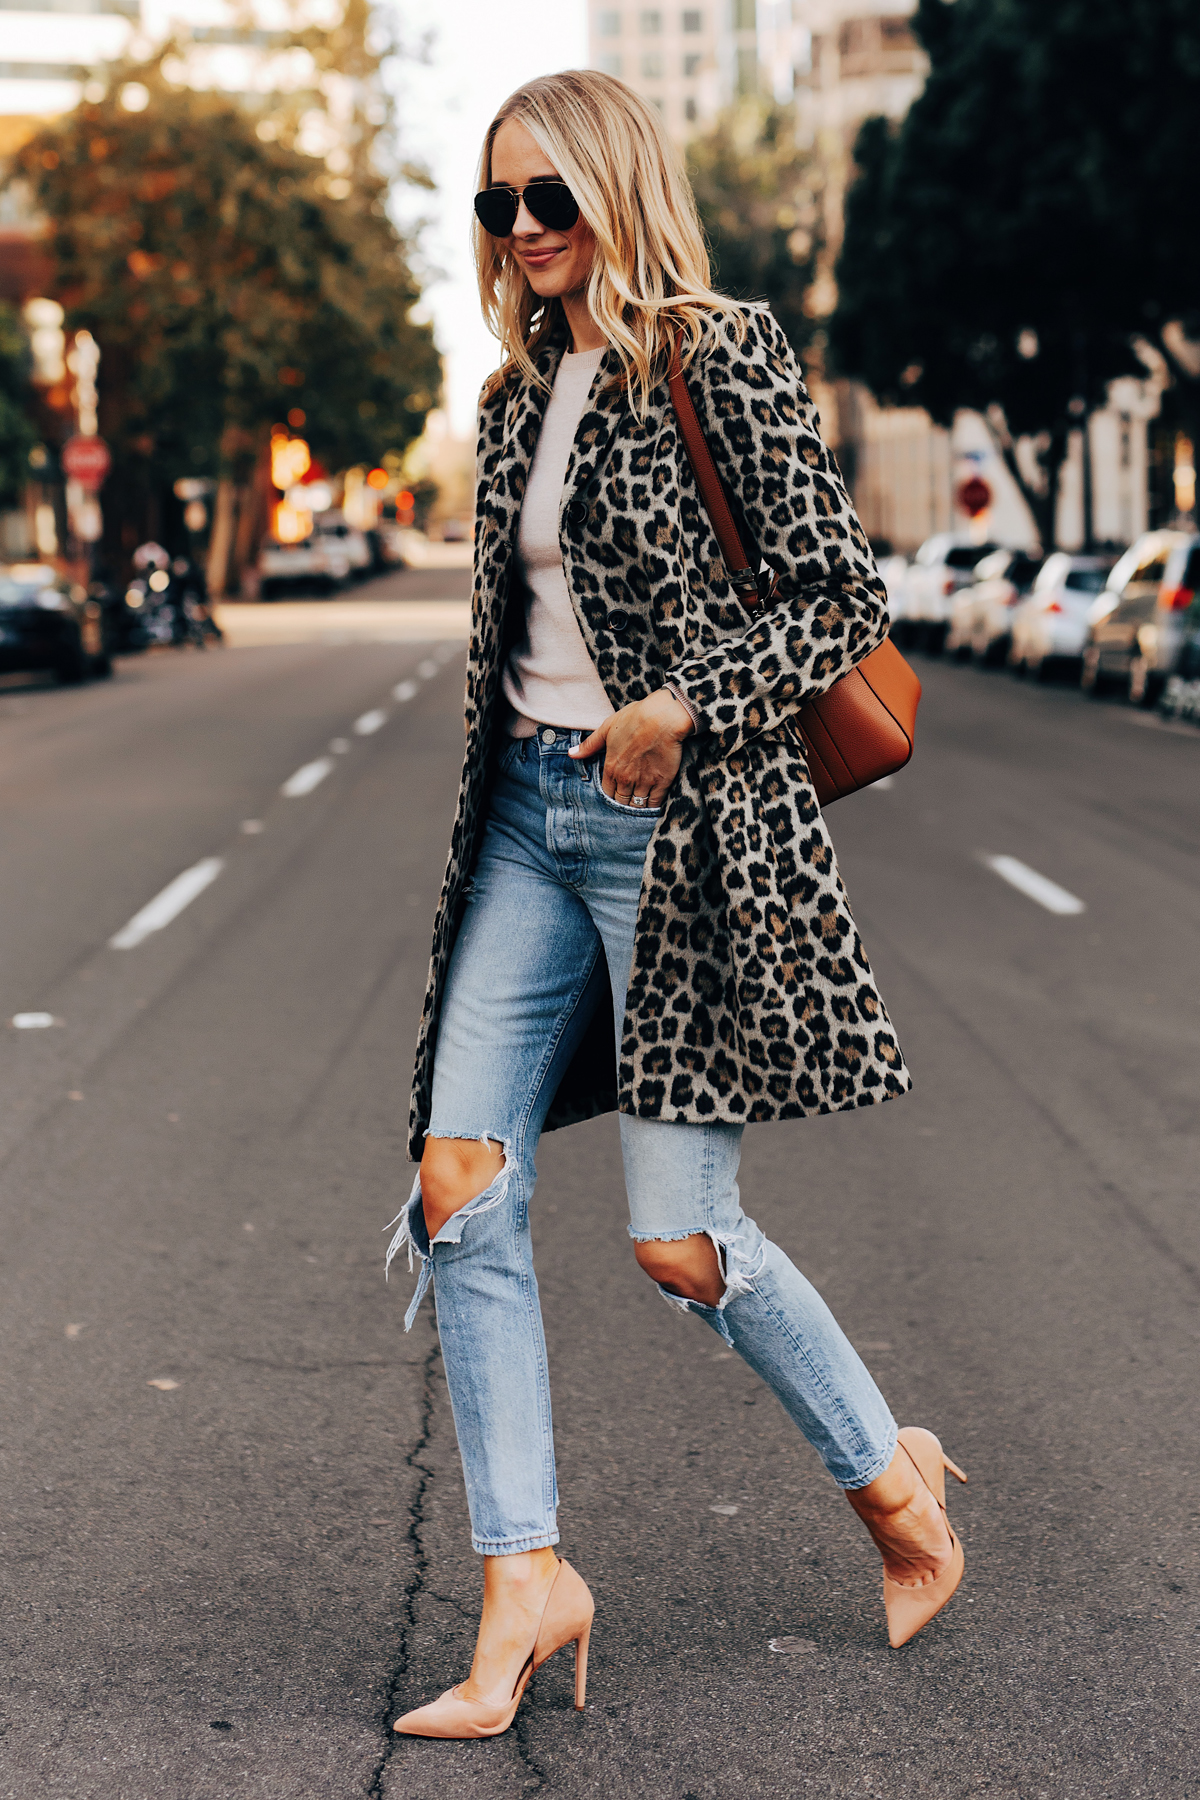 Fashion Jackson Wearing Ann Taylor Leopard Coat Boyish Ripped Jeans Nude Pumps Givenchy Antigona Cognac Satchel